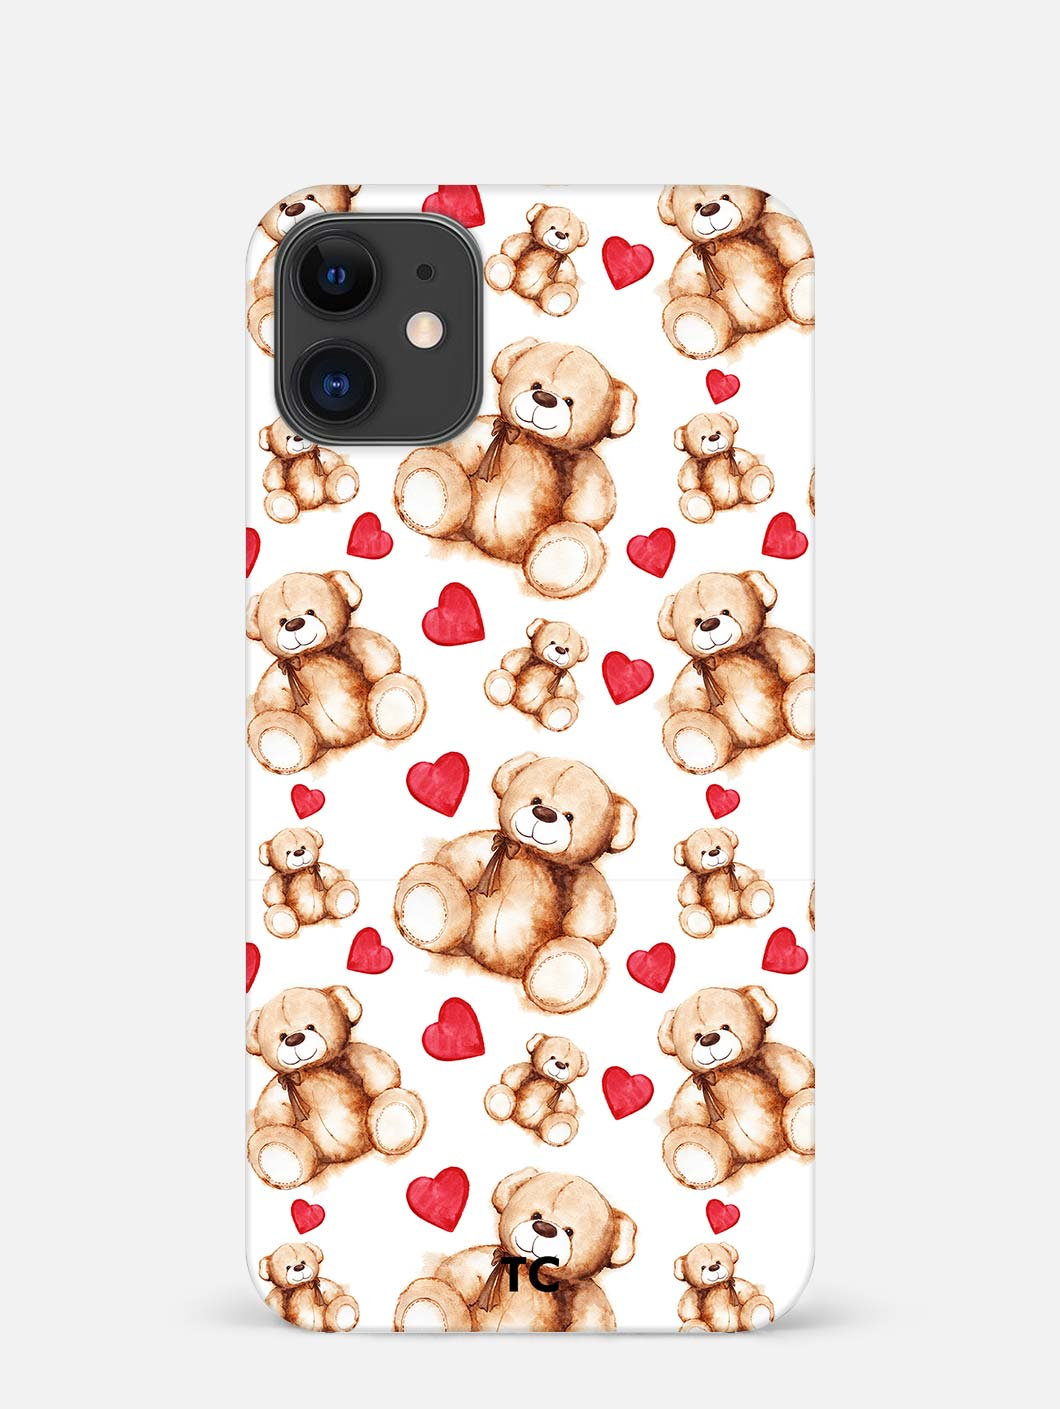 Teddy Bear iPhone 12 Mini Mobile Cover